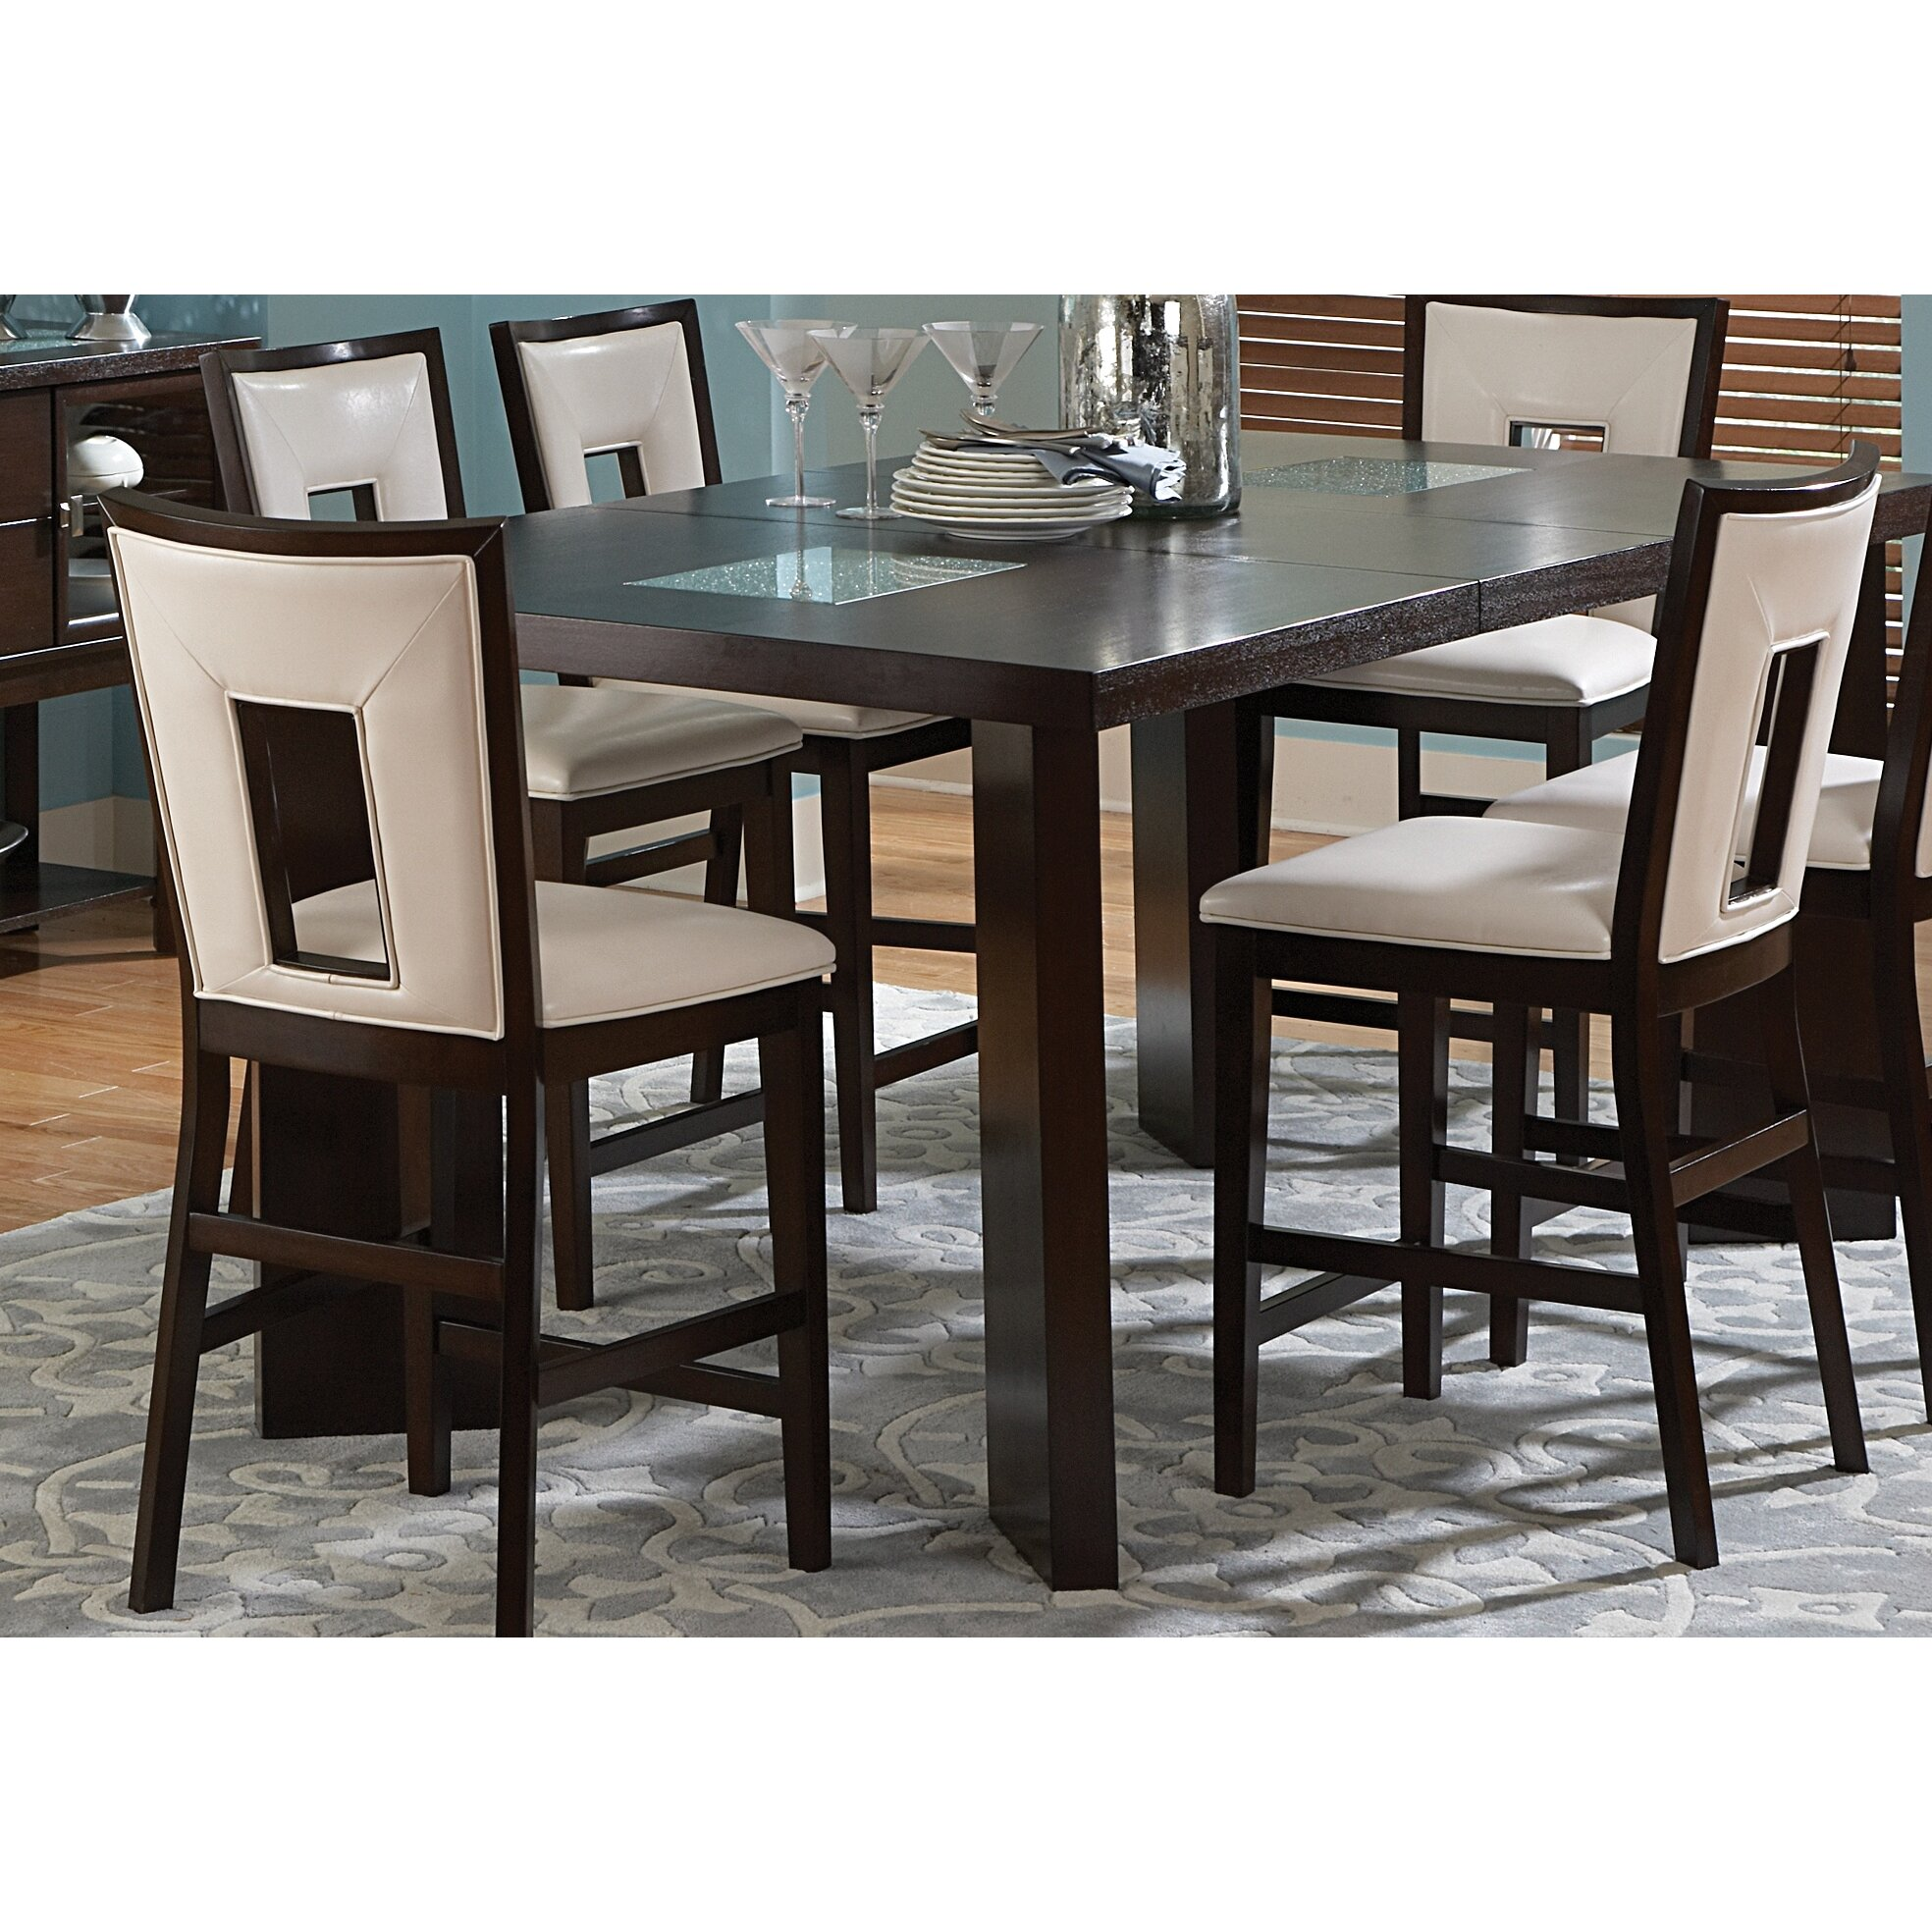 7 Piece Counter Height Dining Room Sets: Brayden Studio Hillcrest 7 Piece Counter Height Dining Set